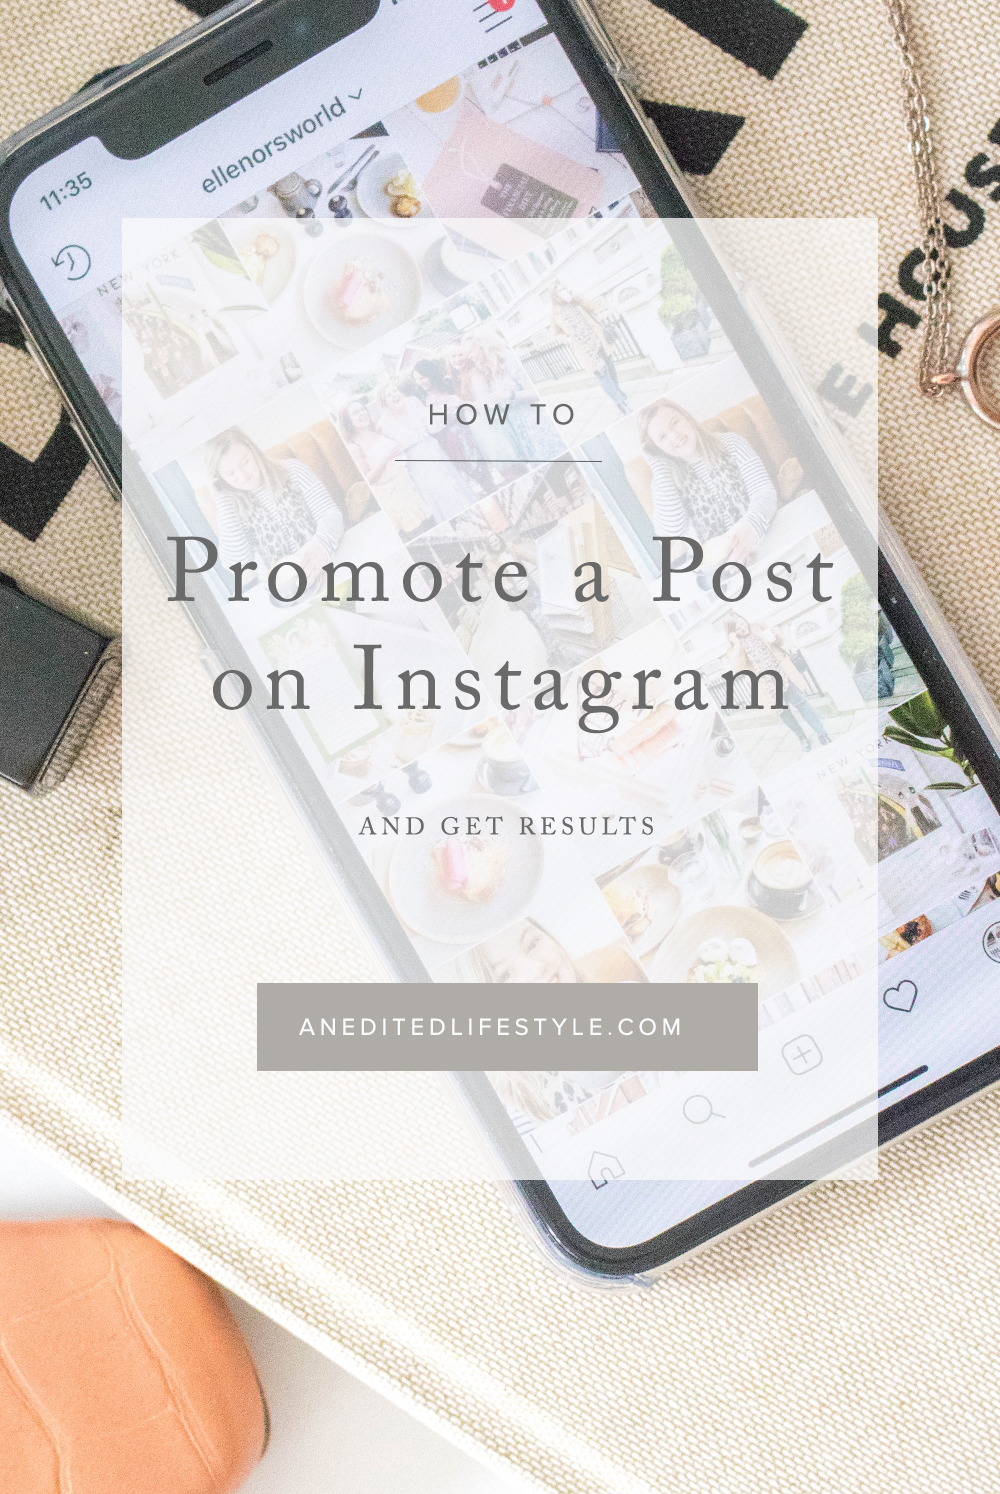 an edited lifestyle how to promote a post on instagram